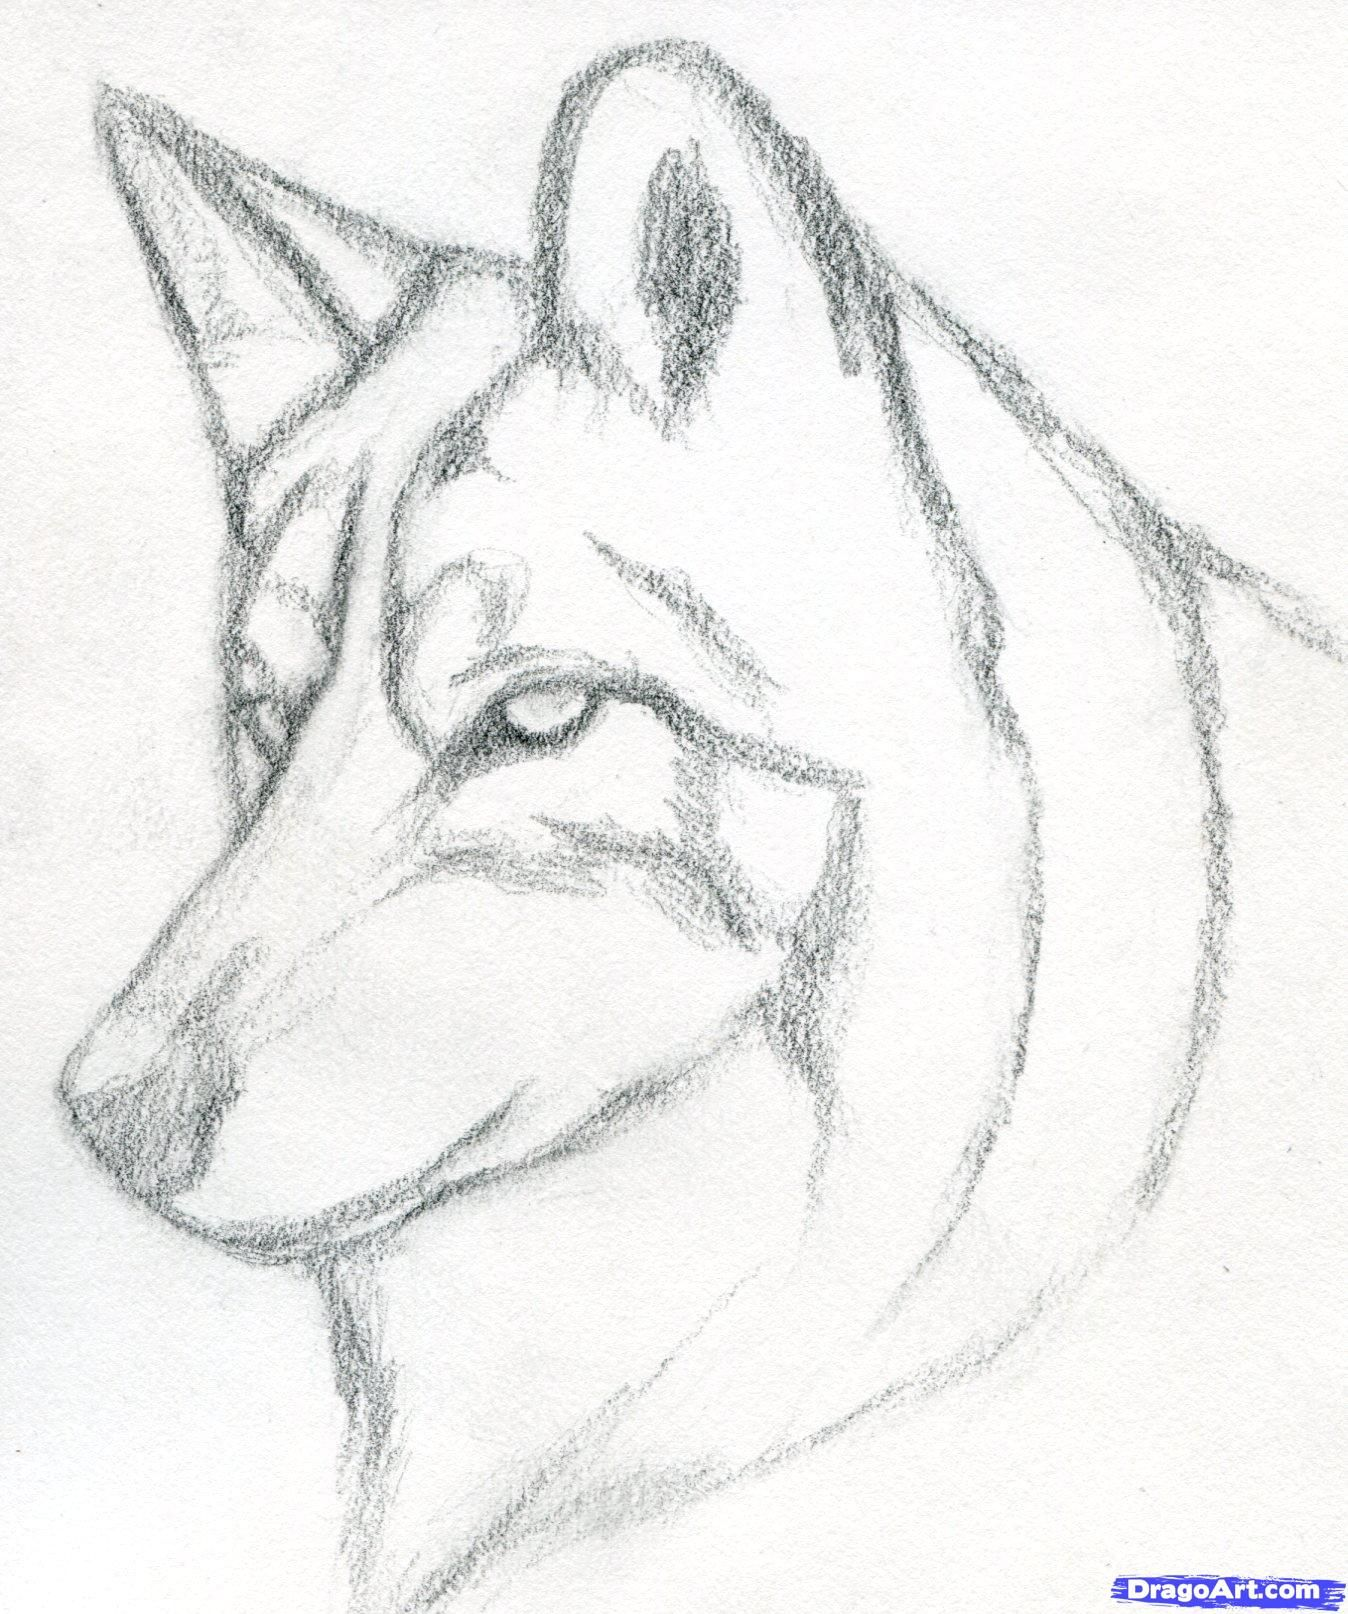 1348x1614 Pencil Drawing Of Wolf Wolves To Draw Step 9 How To Draw Pencil Drawings Easy Dog Drawing Simple Wolf Drawing Easy